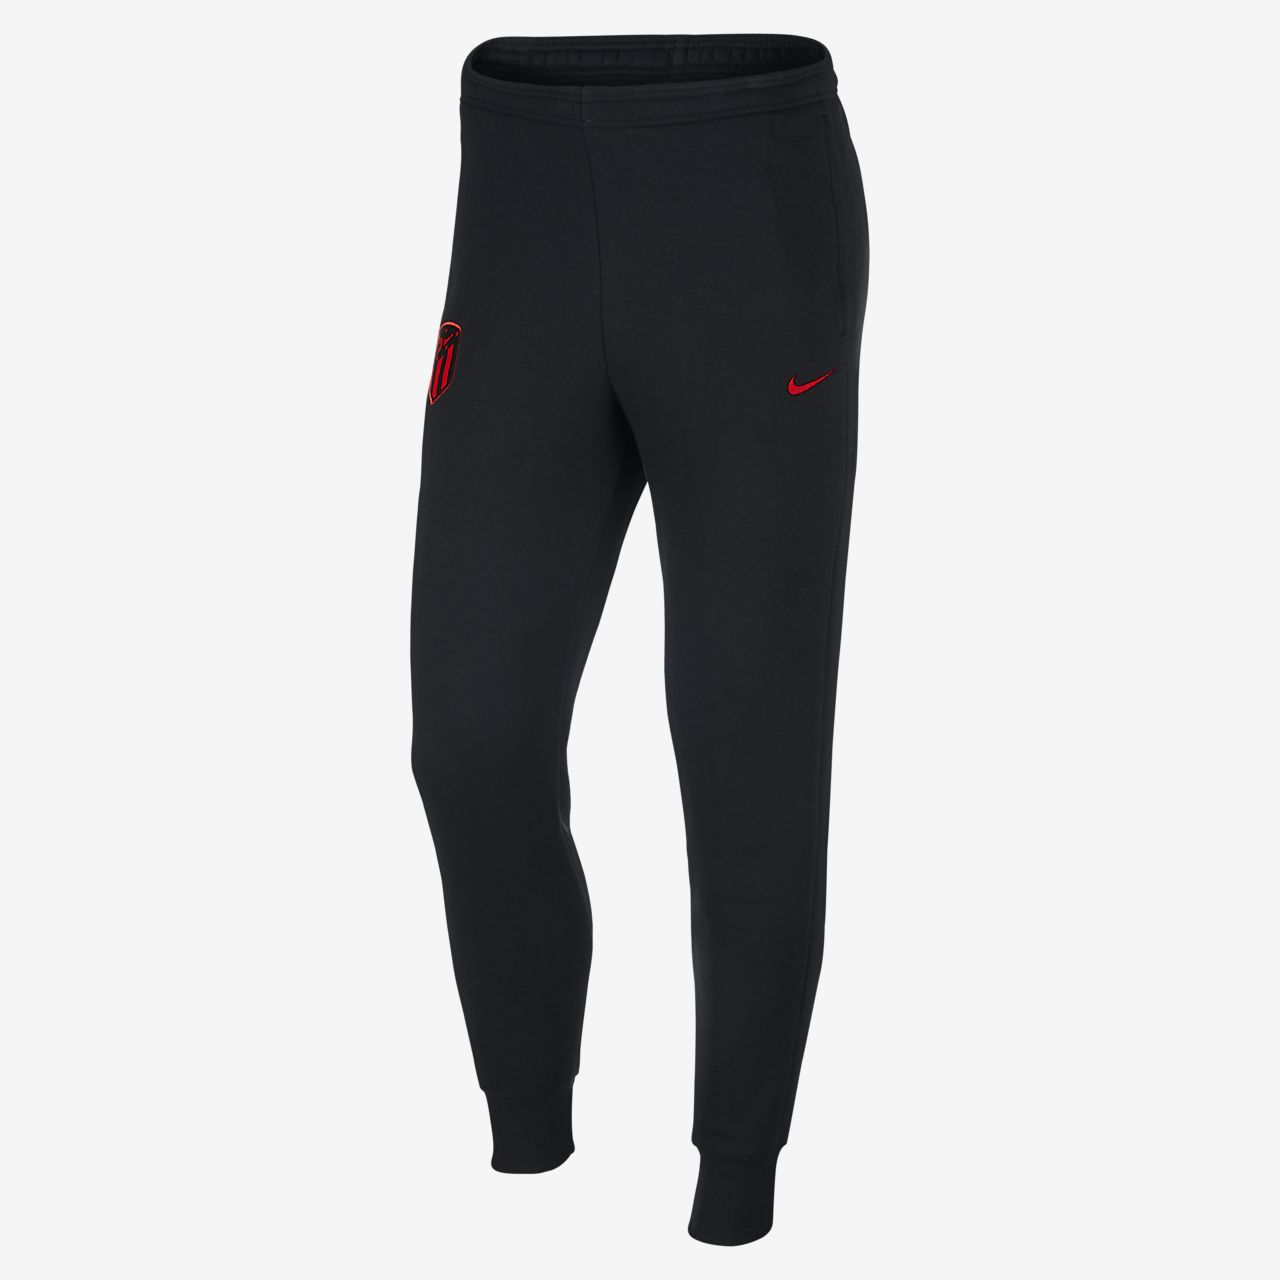 Atlético de Madrid Men's Fleece Pants